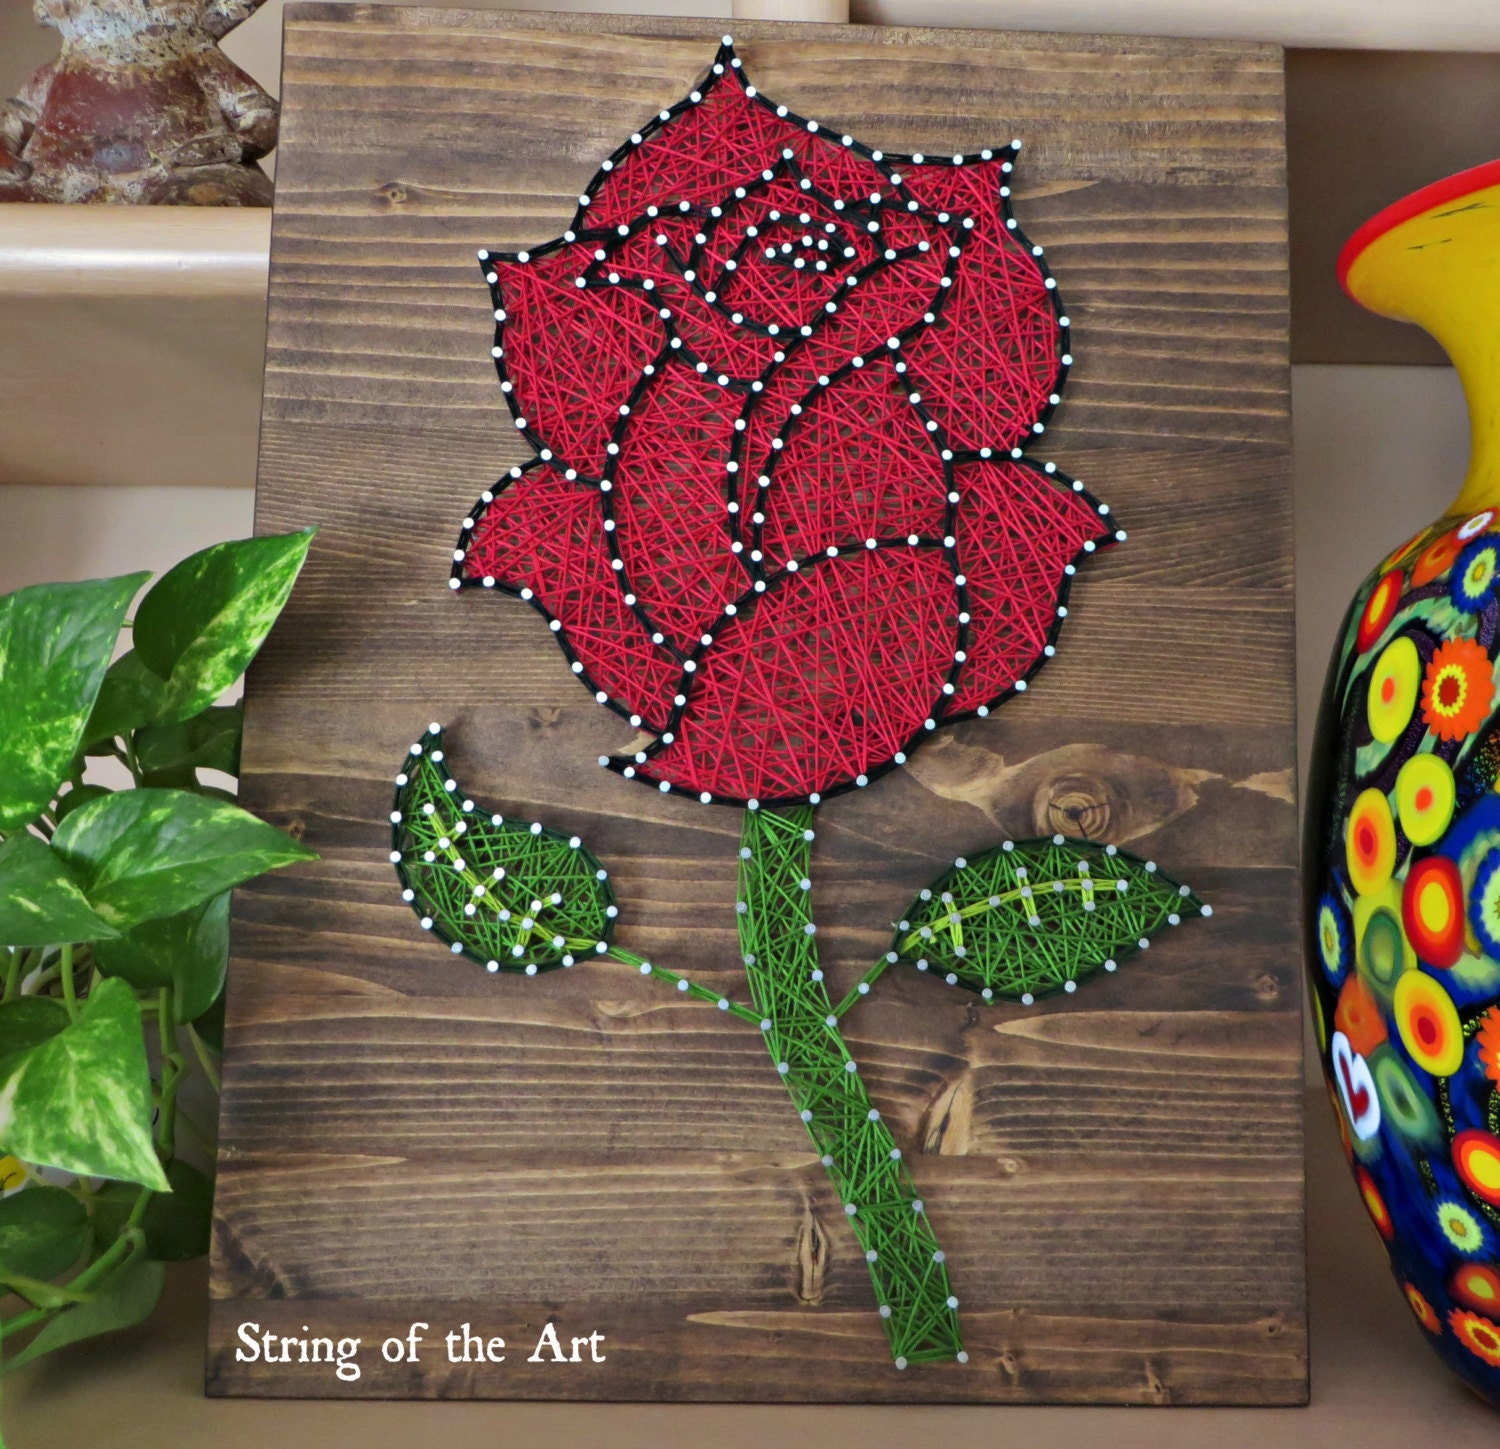 diy string art kit rose rose string art rose by stringoftheart. Black Bedroom Furniture Sets. Home Design Ideas